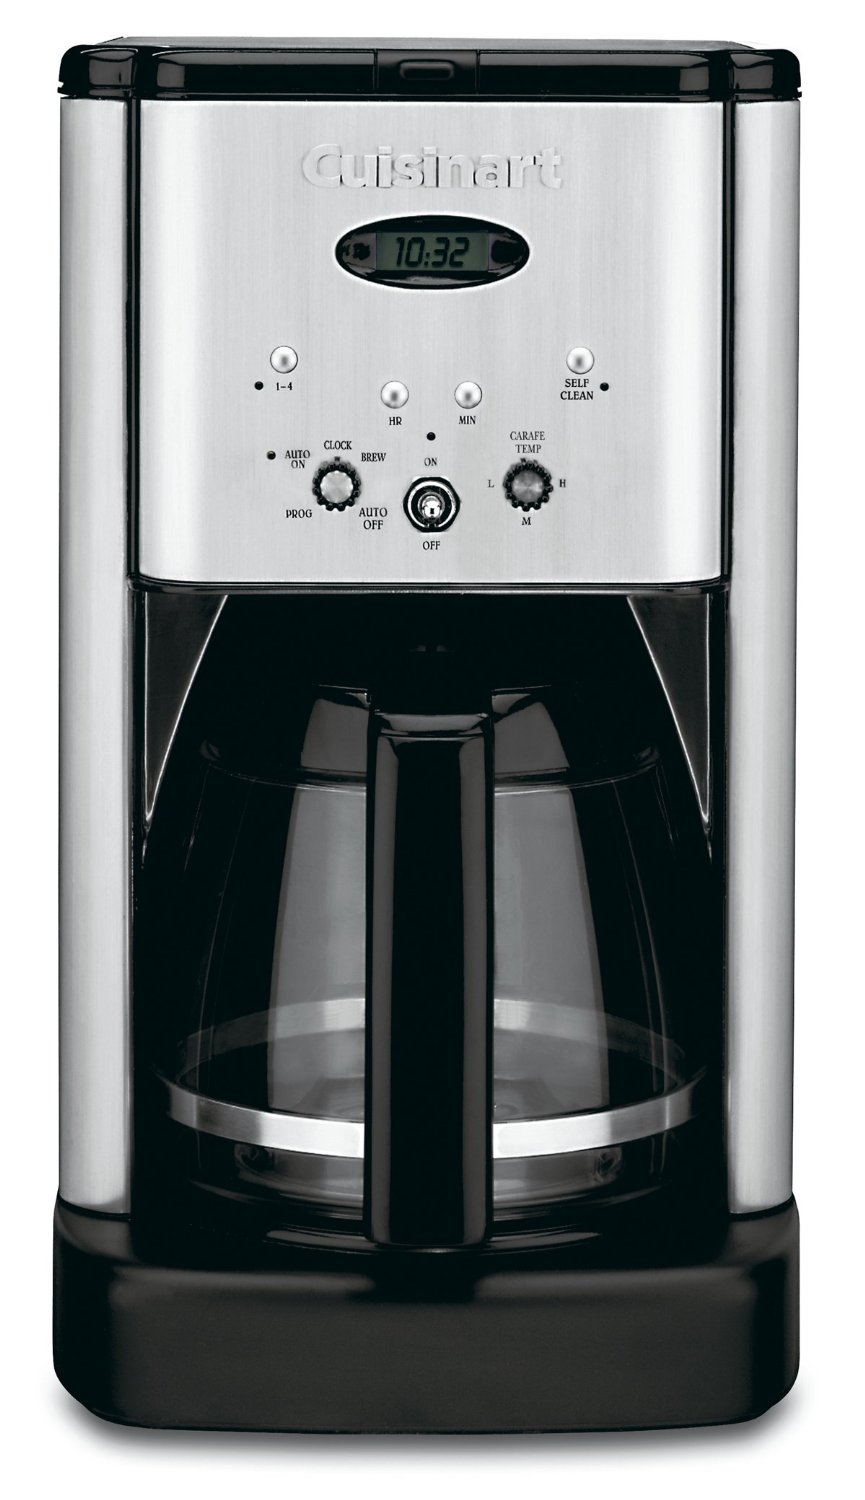 Cuisinart Brew Central DCC-1200 12 Cup Programmable Coffeemaker Image